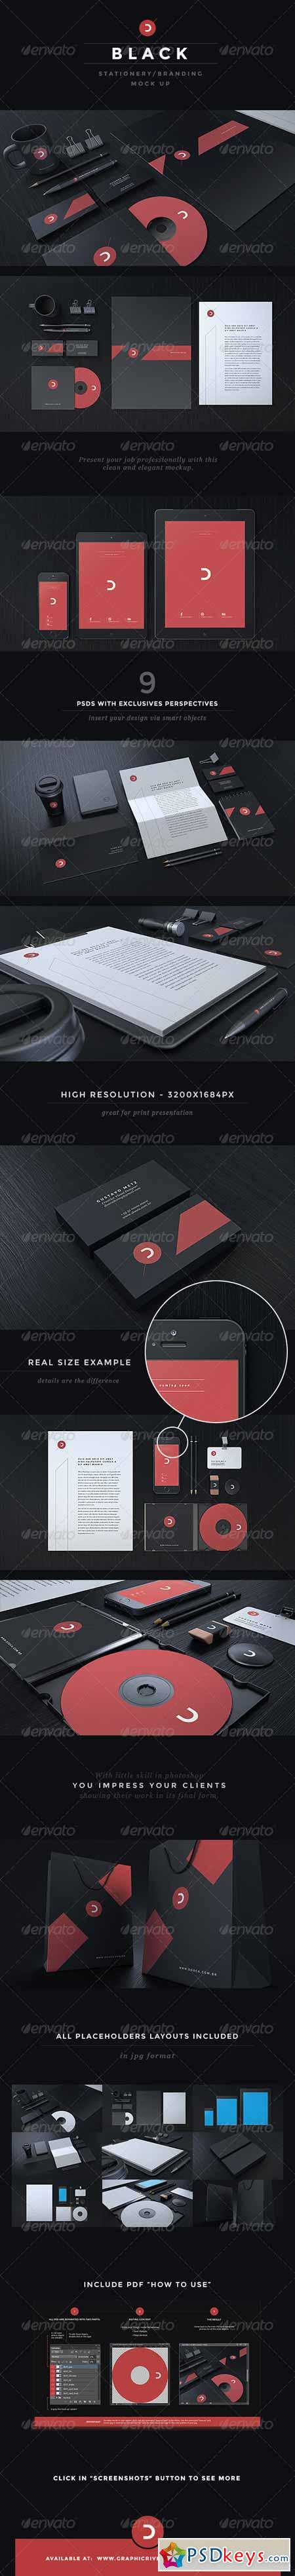 Black Stationery Branding Mock-Up 5749910 » Free Download